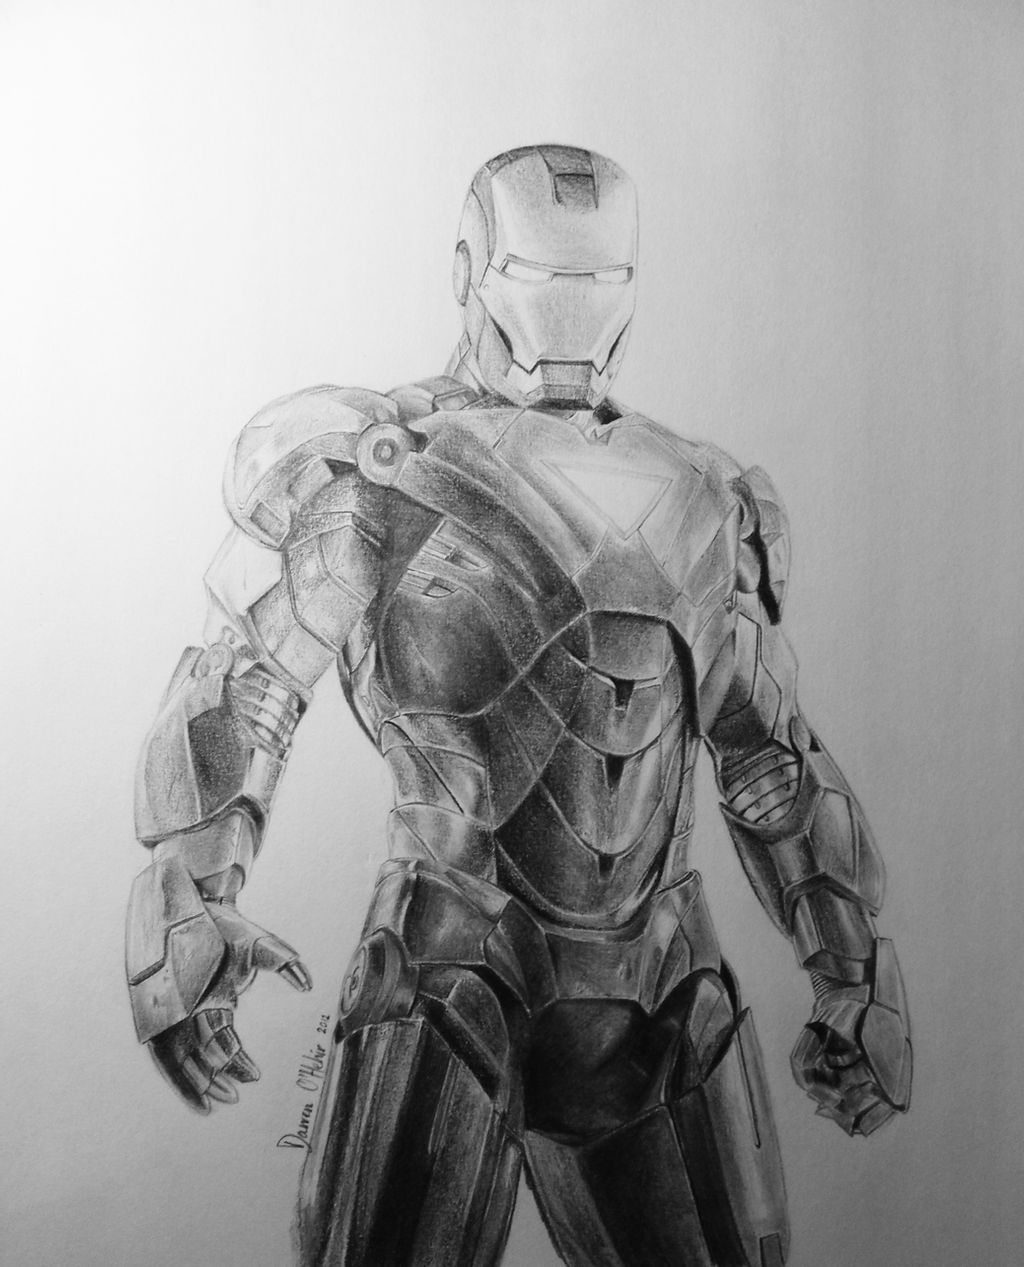 pictures of iron man iron man wallpapers pictures images man iron of pictures